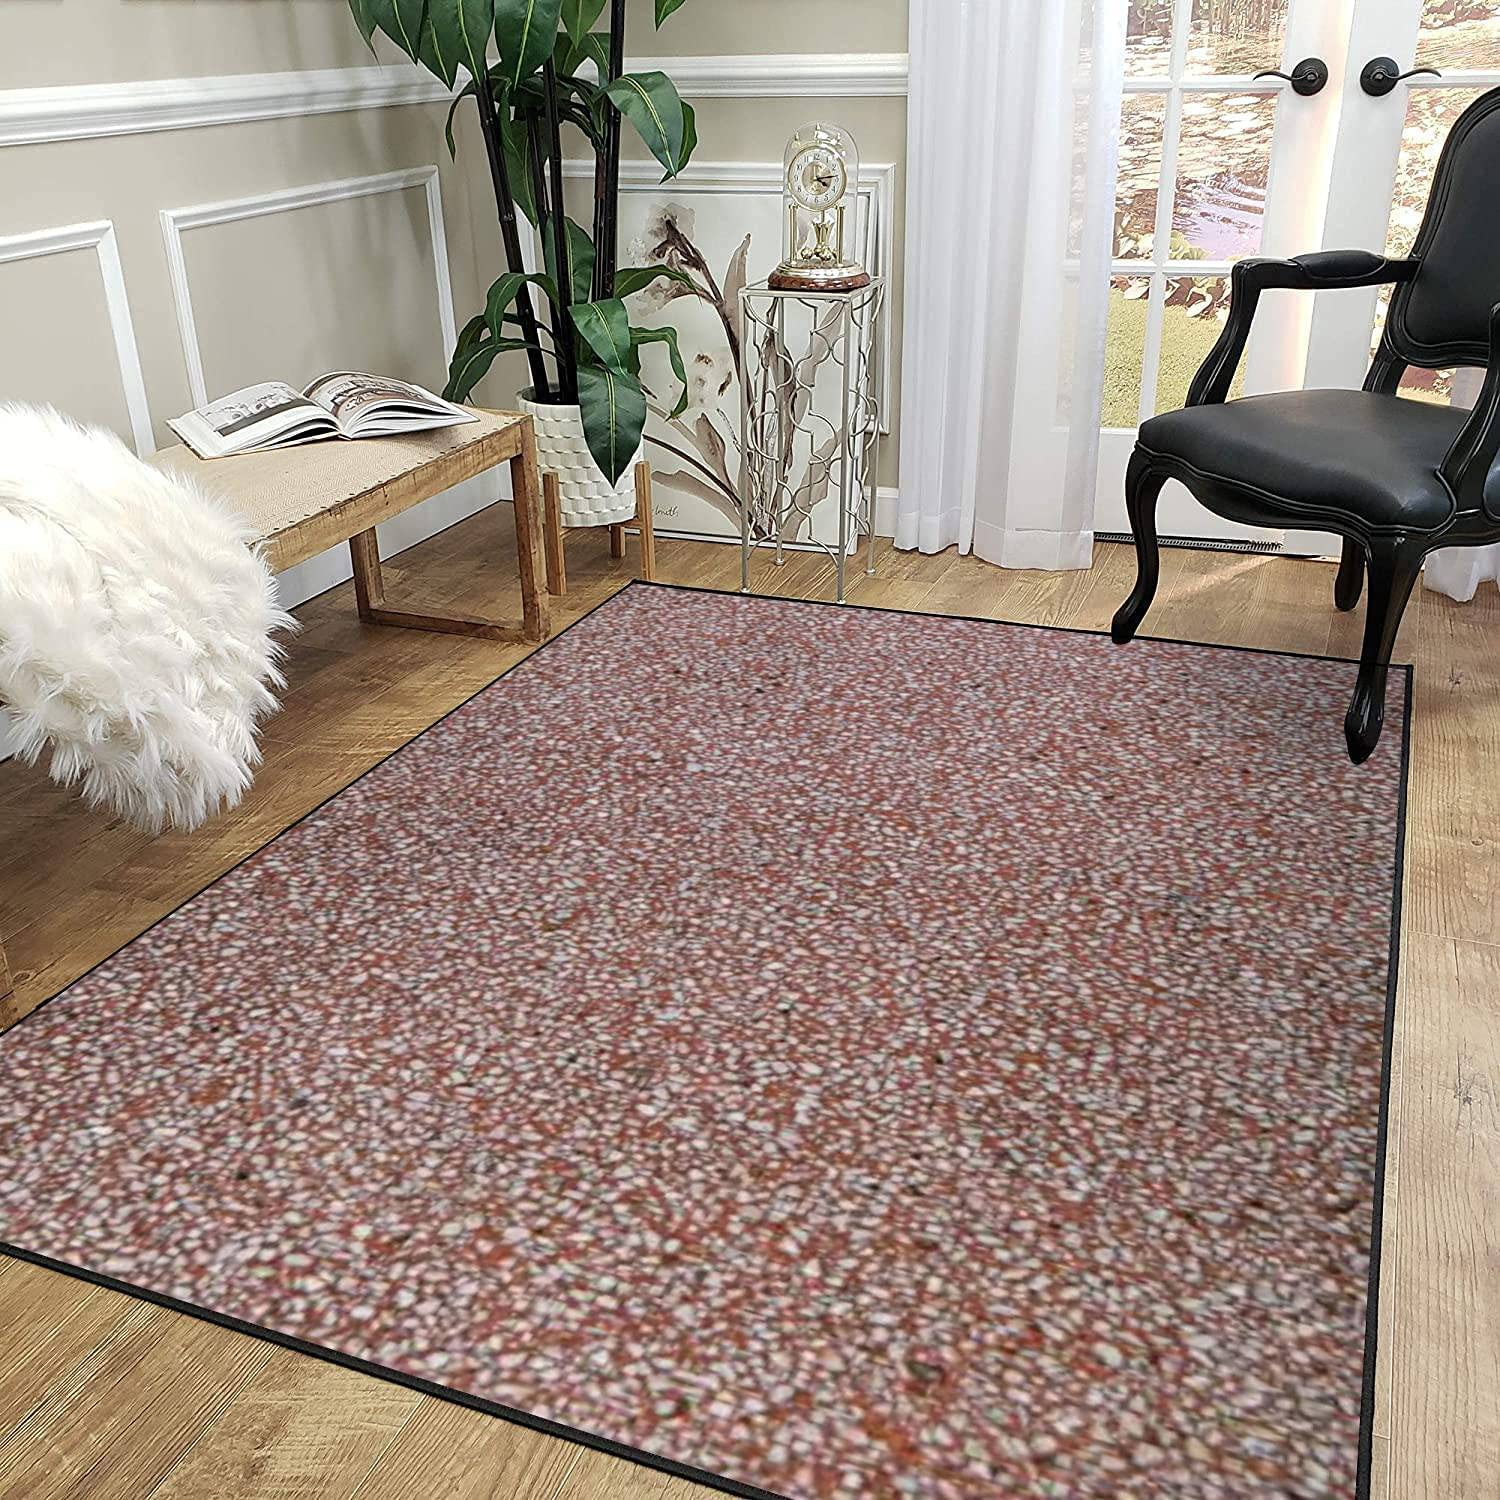 Max 47% OFF Rug Pad Close up Wall of Red Polished Ima Grit Max 61% OFF Cement with White